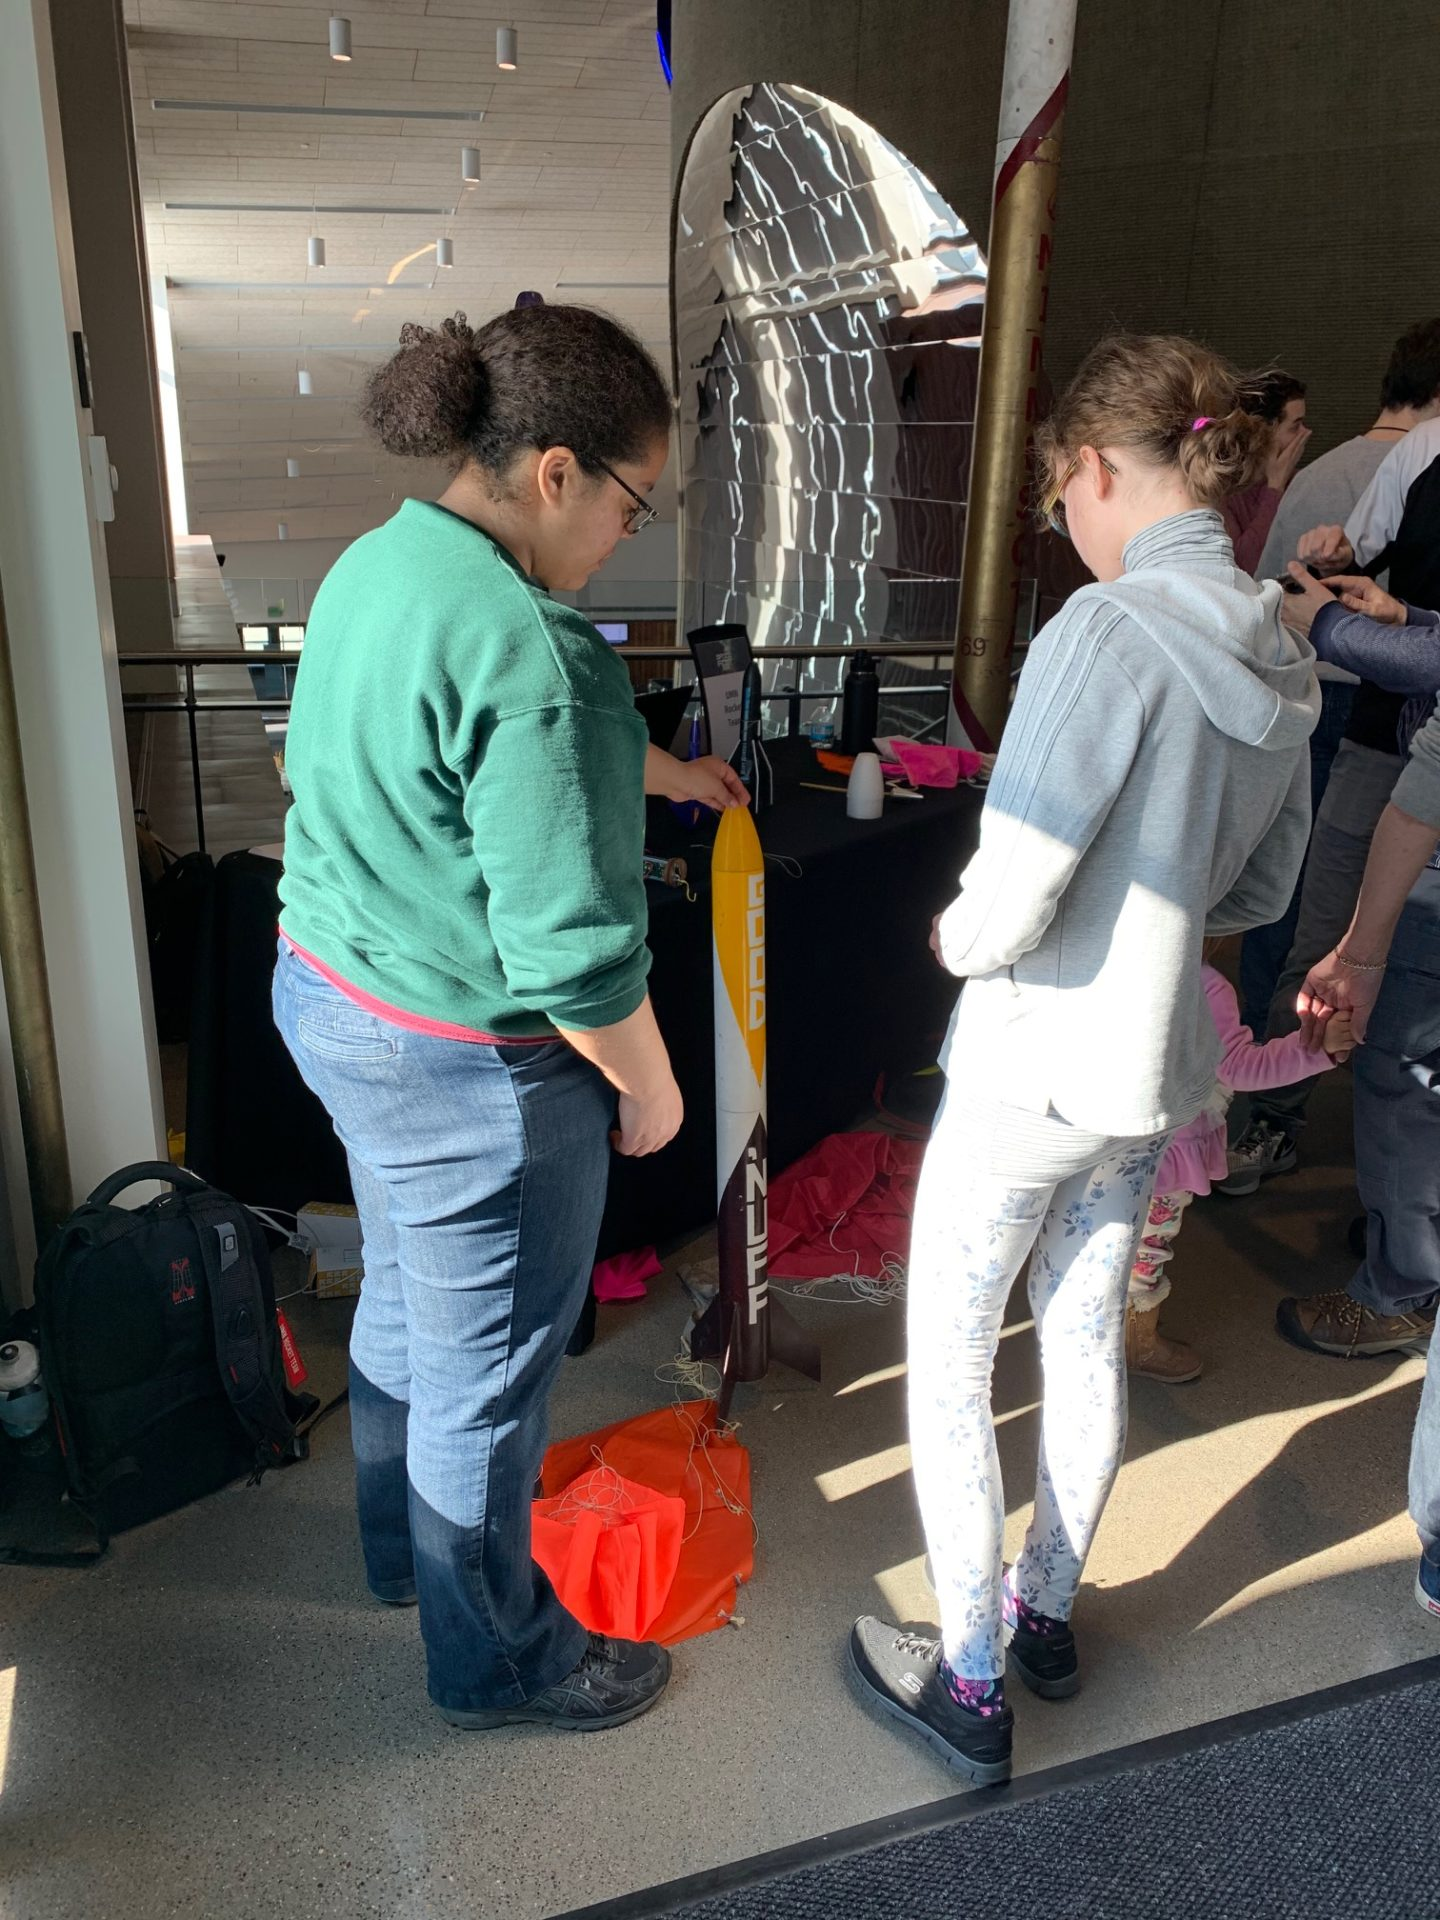 U of M student demonstrates rocket features to visitor